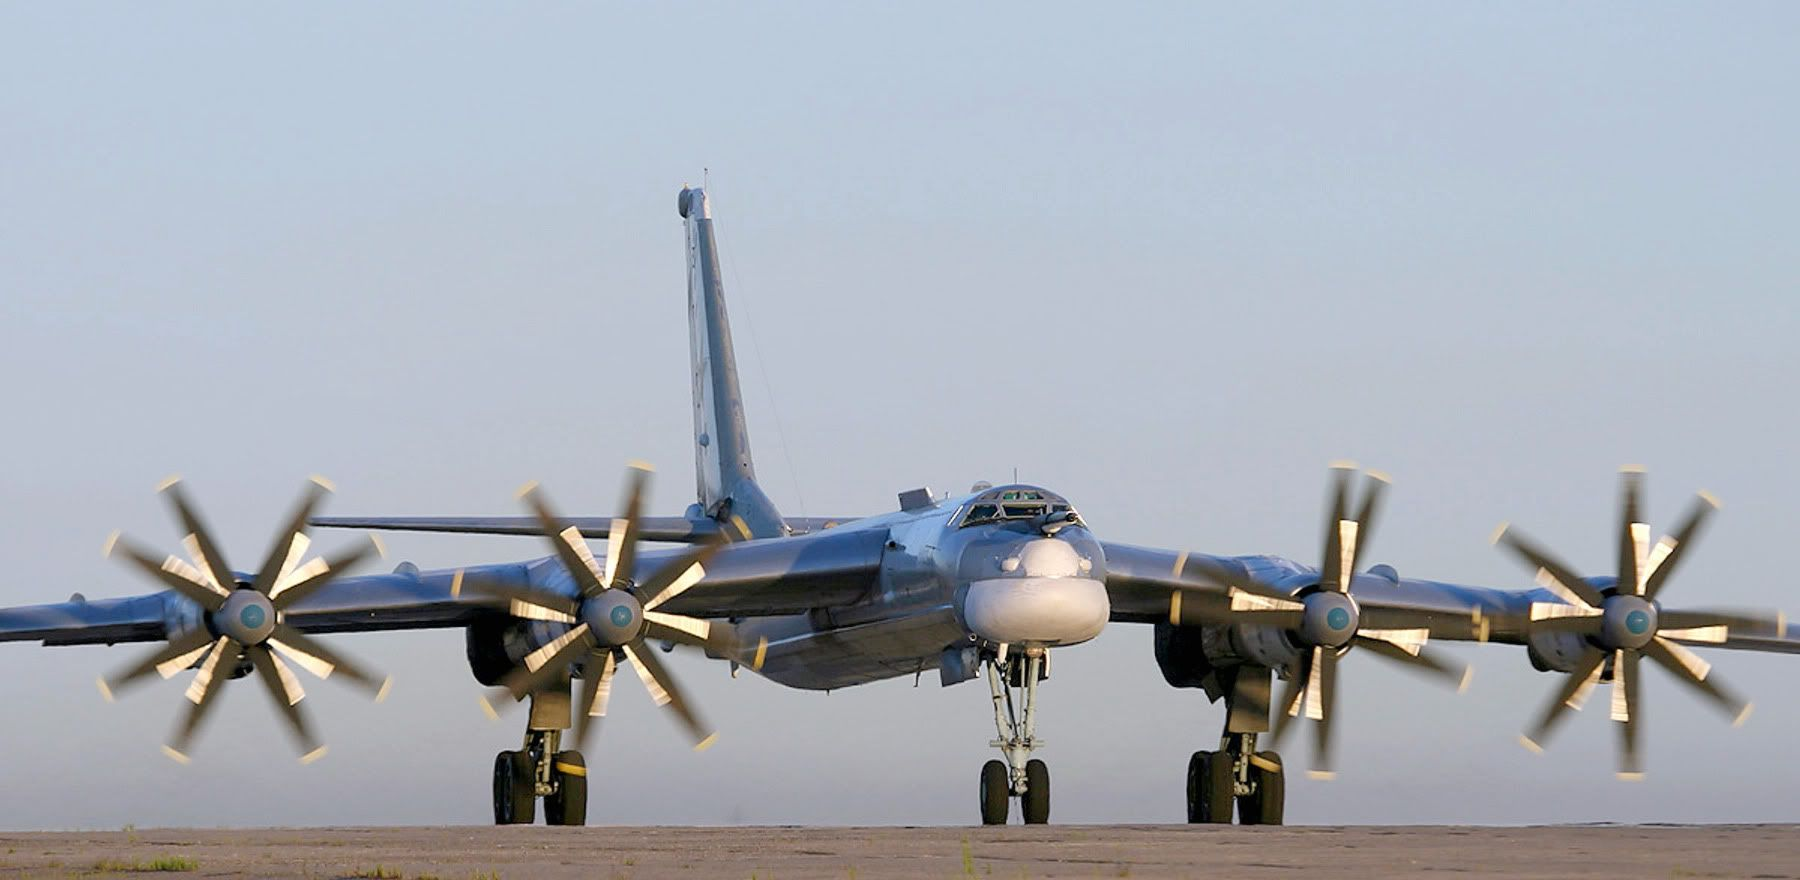 Tupolev Tu 95 Bear Big Honking Russian Bomber Comparable To The B